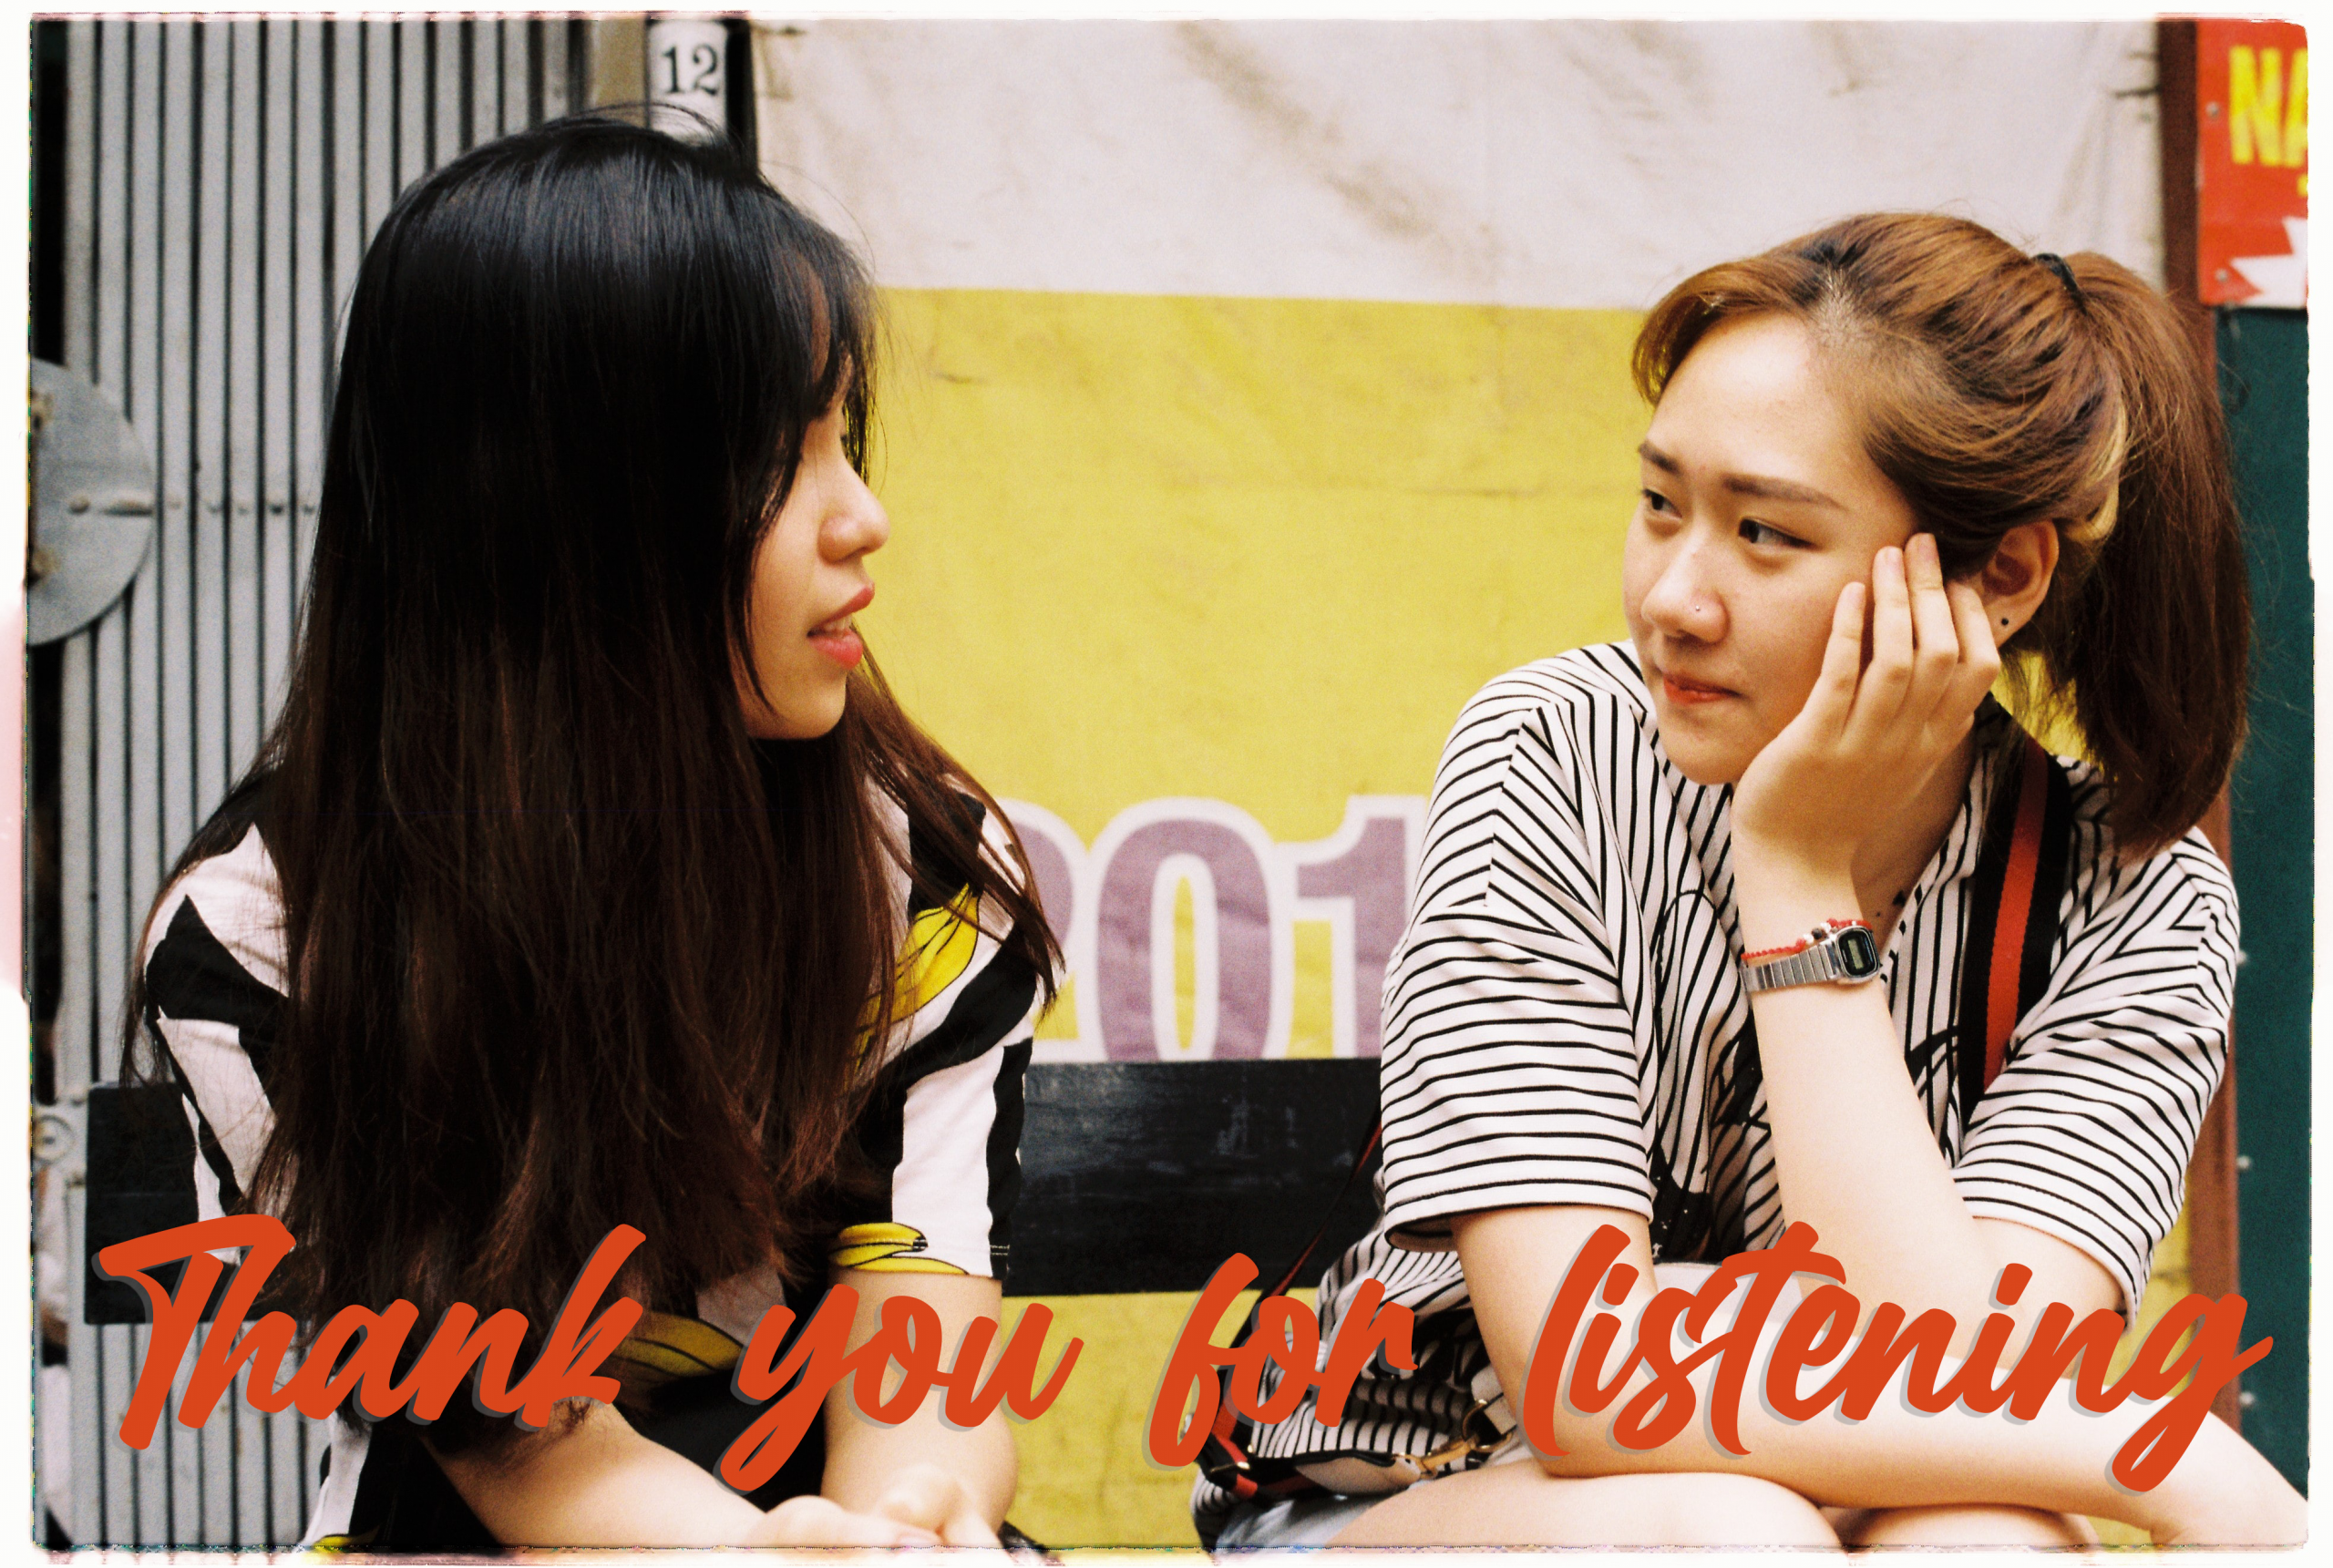 Thank you for listening blog post cover